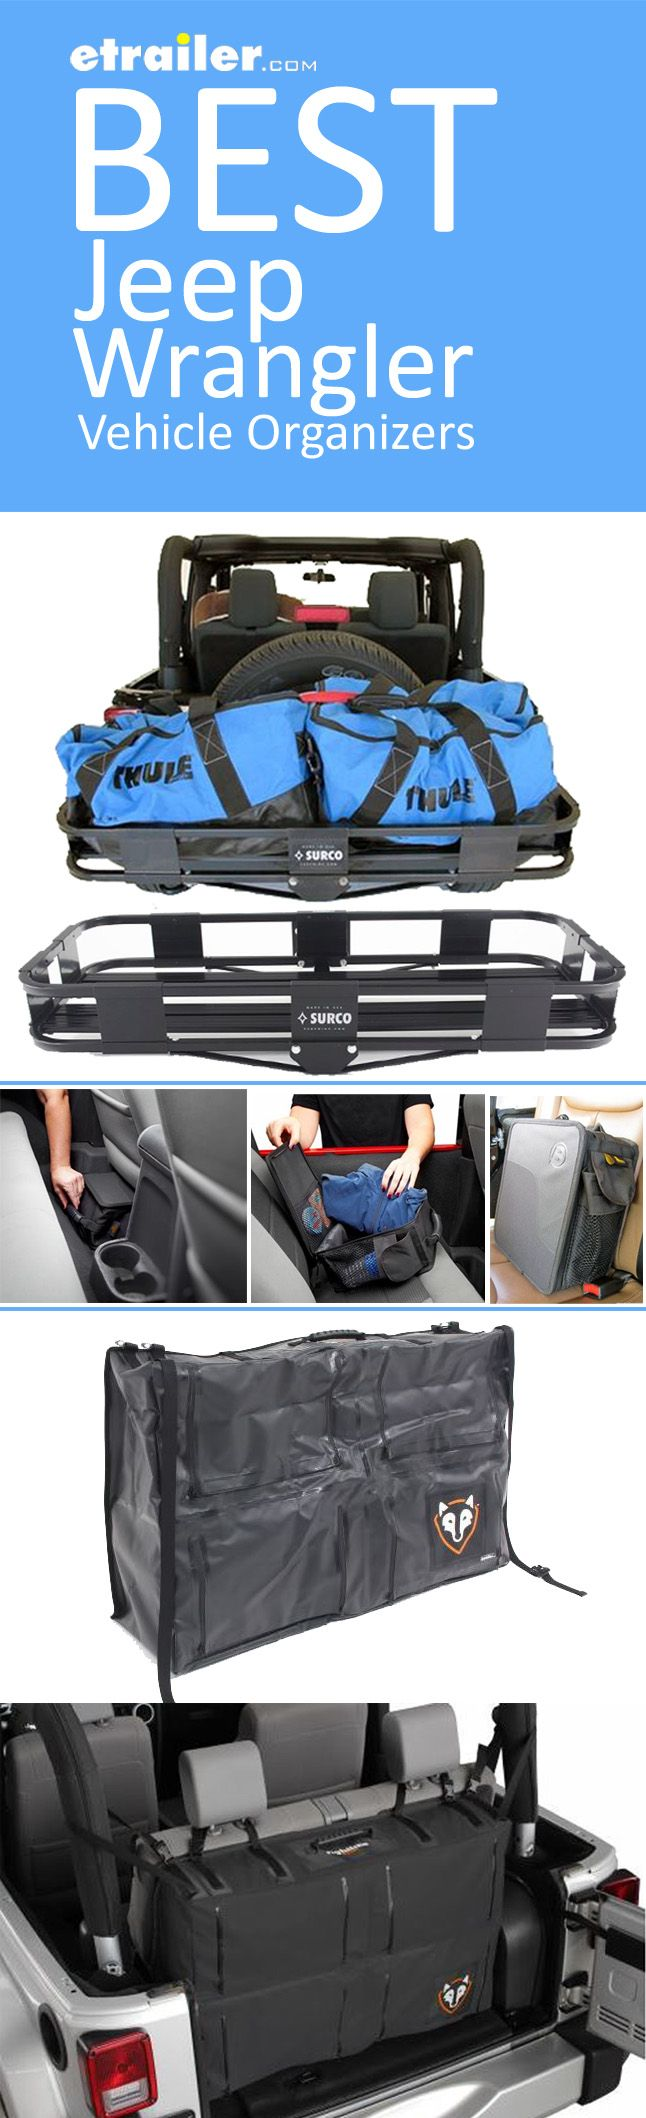 We have the best organization solutions for your Jeep Wrangler so you can pack, stow, carry and haul all of your gear. Be road trip and adventure ready with a spare tire mounted cargo carrier, underseat organizer or cargo area storage bag.